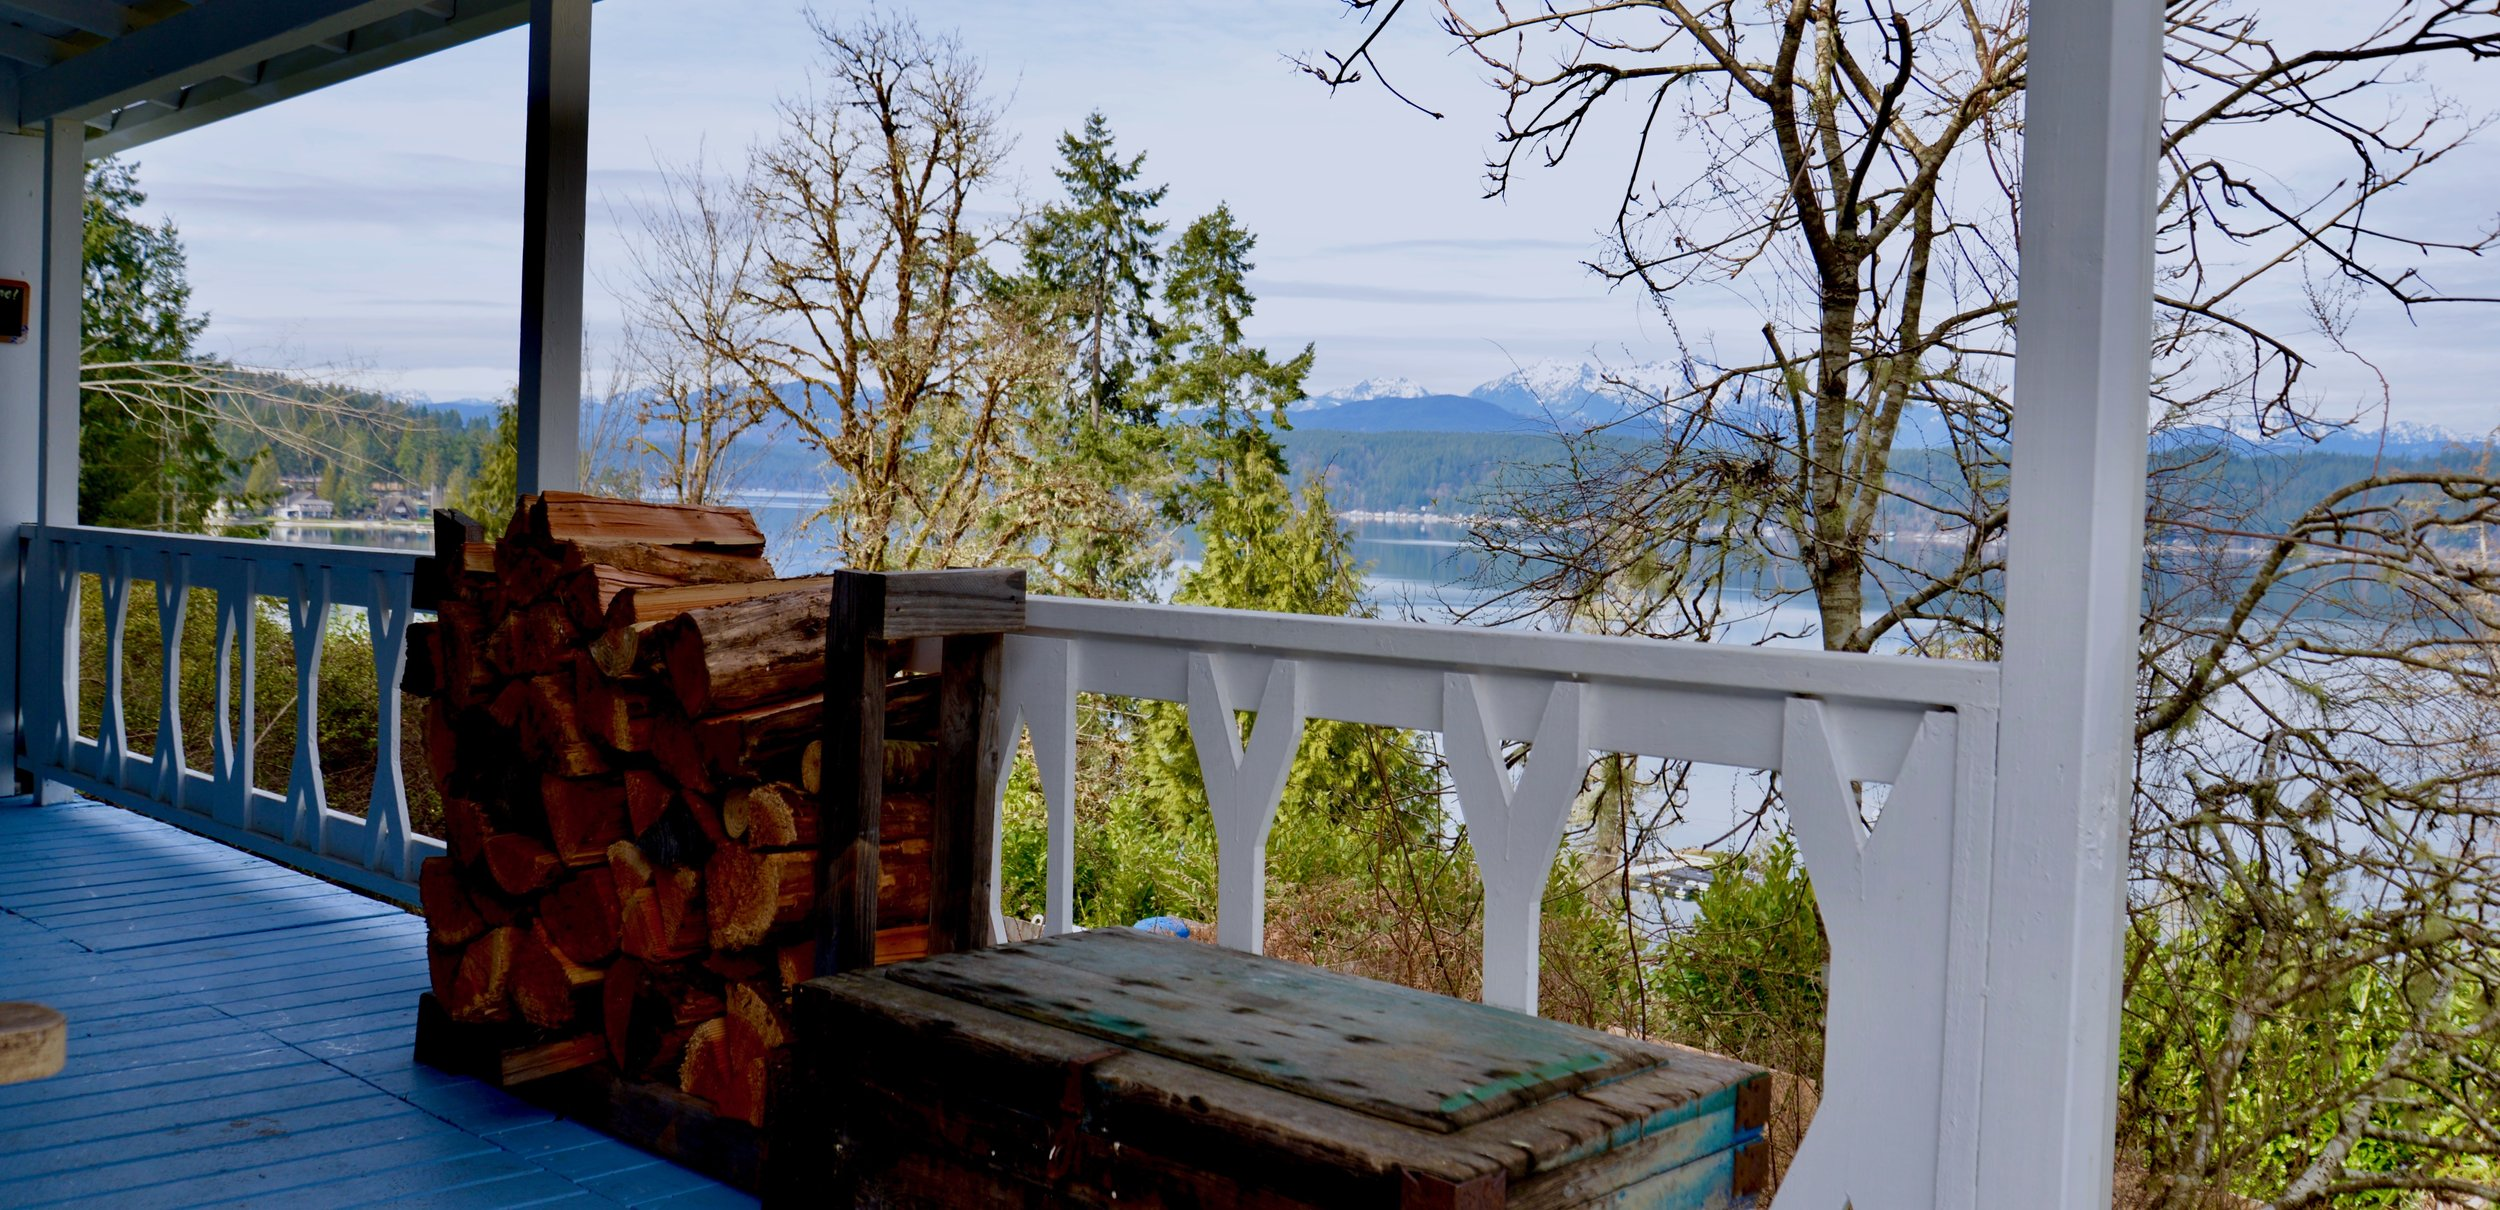 The Olympic view from the  Harmony Hill  cottage overlooking the Canal in Union, WA